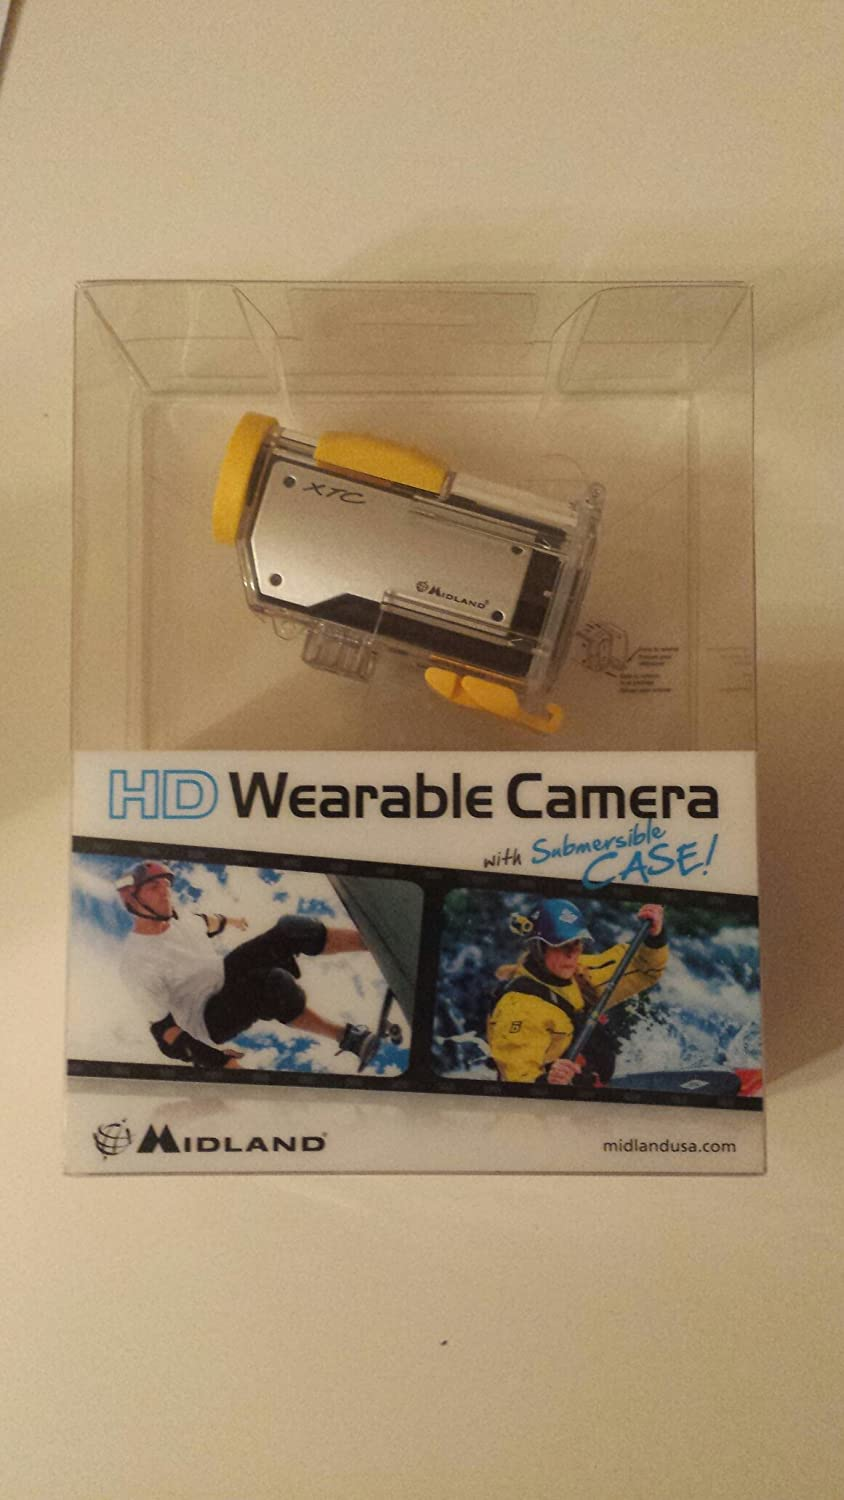 Midland 720P HD Action Cam SubmsblCase